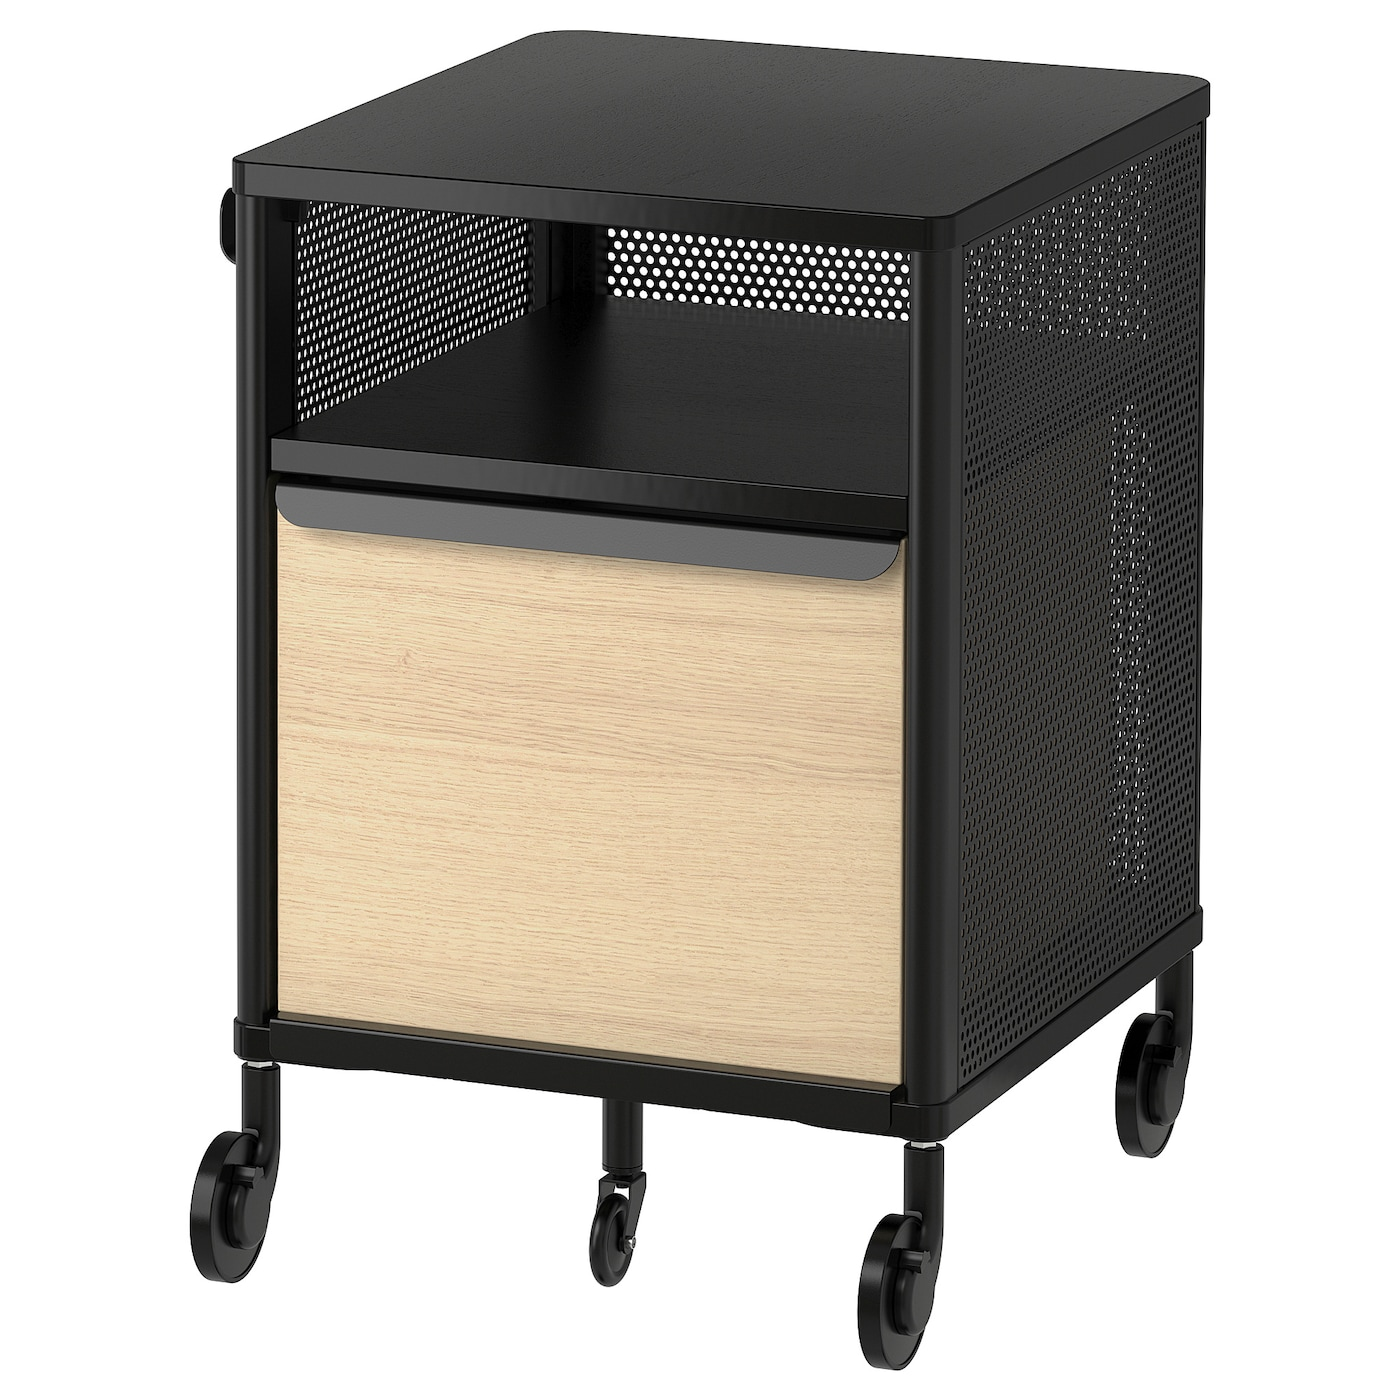 IKEA BEKANT storage unit on castors Integrated damper closes the drawer silently and gently.